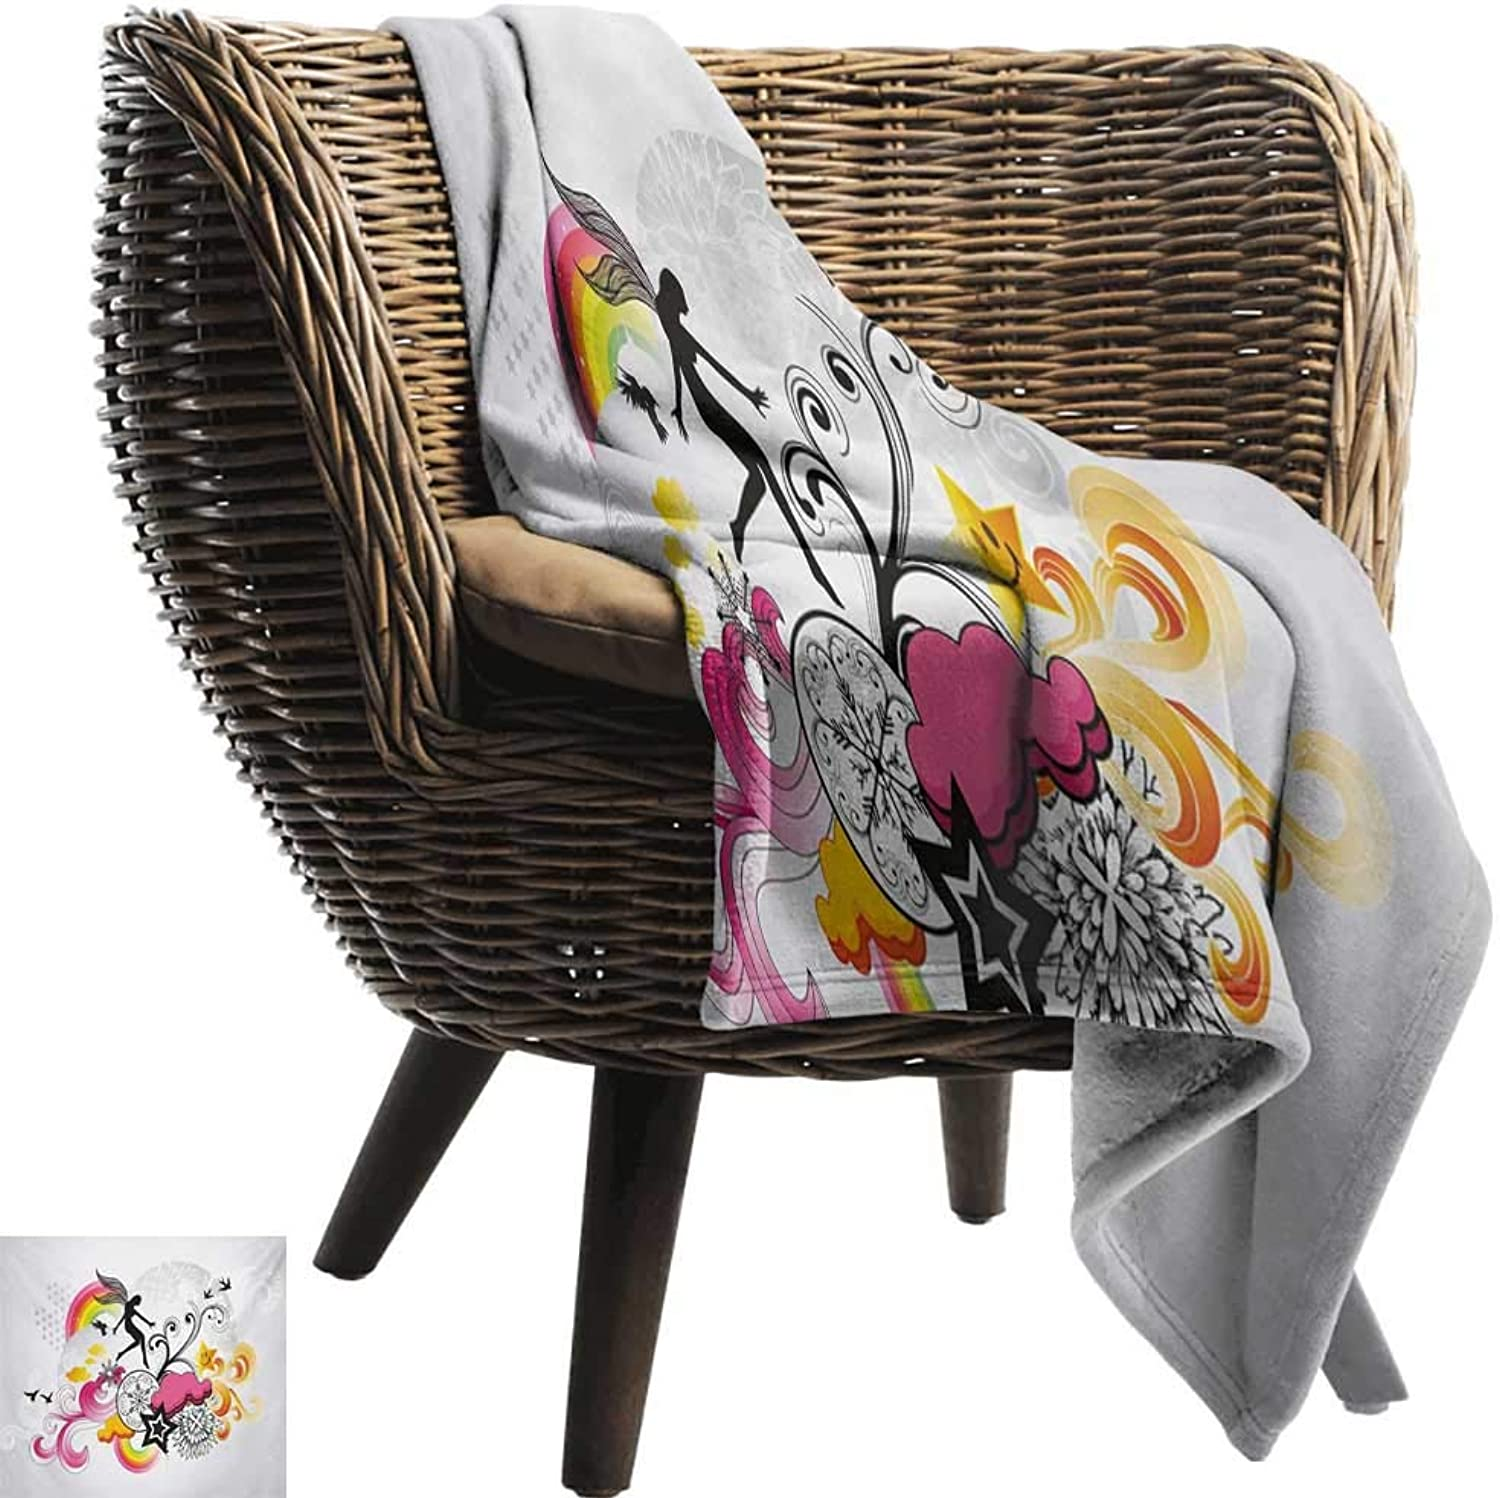 BelleAckerman Picnic Blanket,Modern,Floral Theme Swirl Design Fairy Birds Rainbow Snowflake and Clouds Art,Dust Black and Pink,colorful   Home, Couch, Outdoor, Travel Use 35 x60